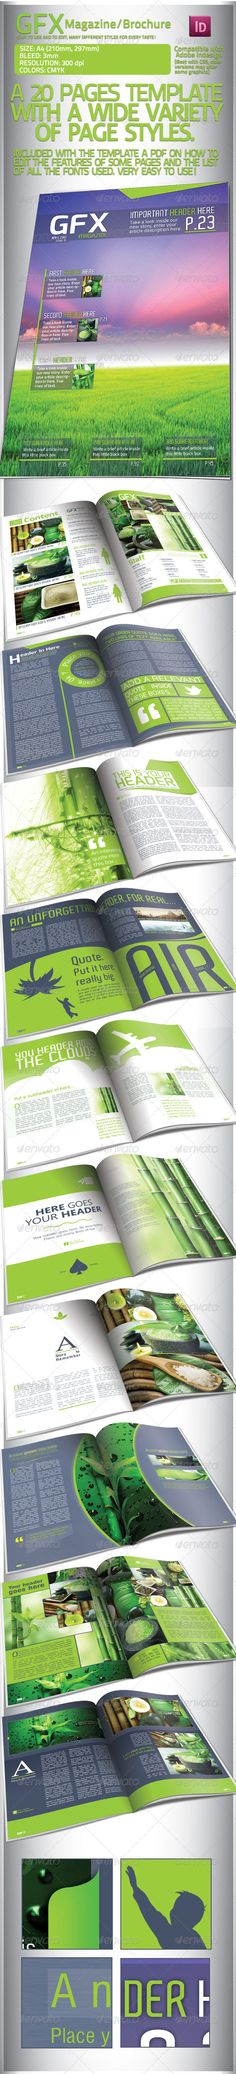 DOWNLOAD:  https://graphicriver.net/item/clean-green-magazinebrochure-20-pages/1955672?ref=StormDesigns